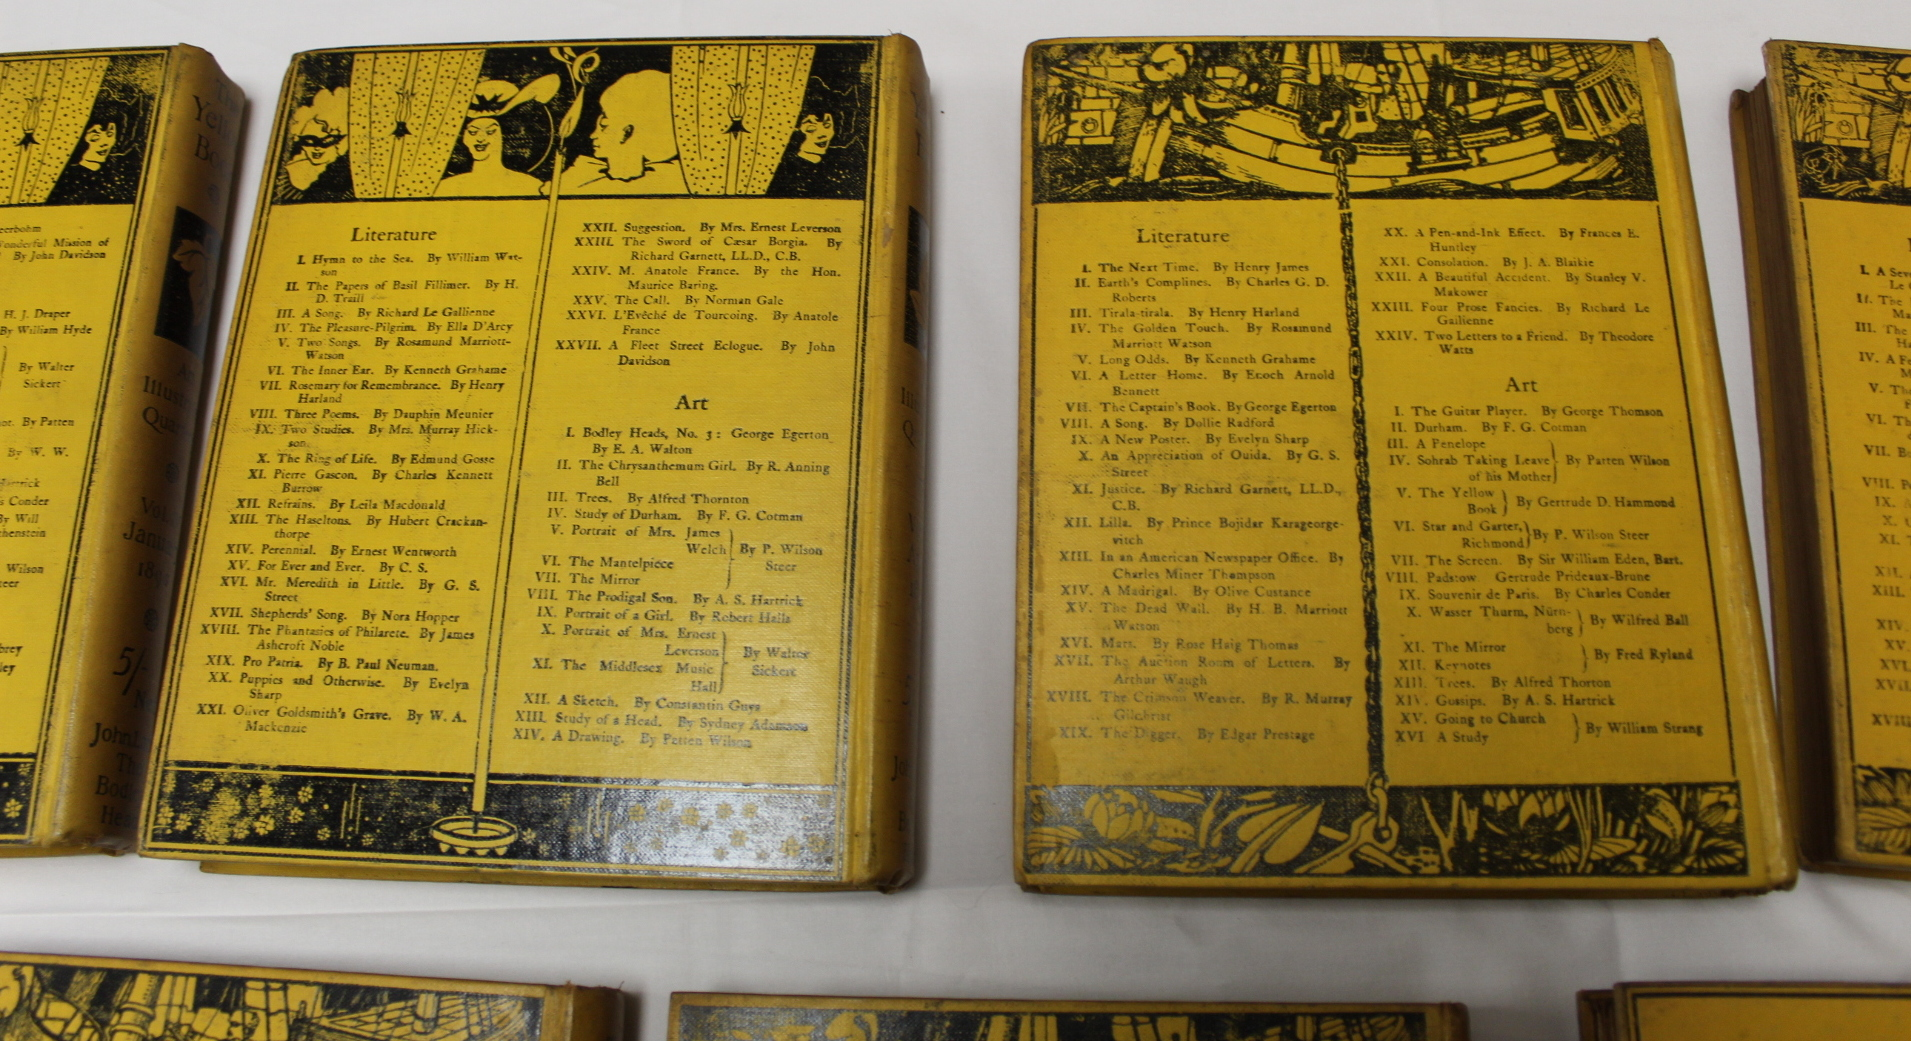 THE YELLOW BOOK.An Illustrated Quarterly. A set of 13 vols., many fine illus. Small quarto. - Image 38 of 45